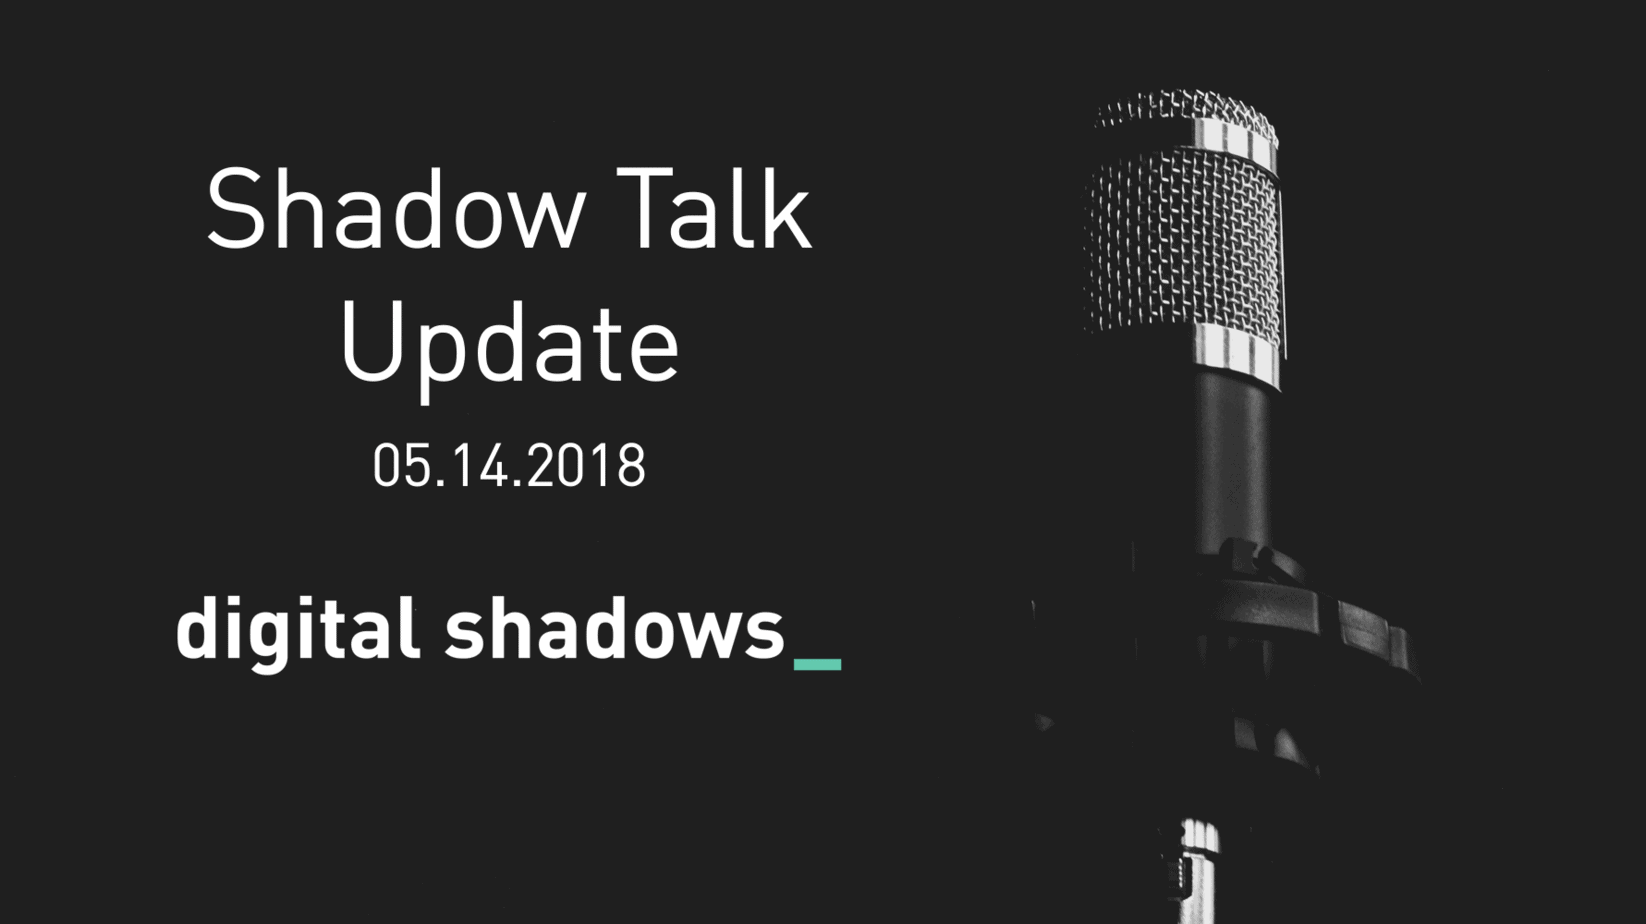 Shadow Talk Update – 05.14.2018